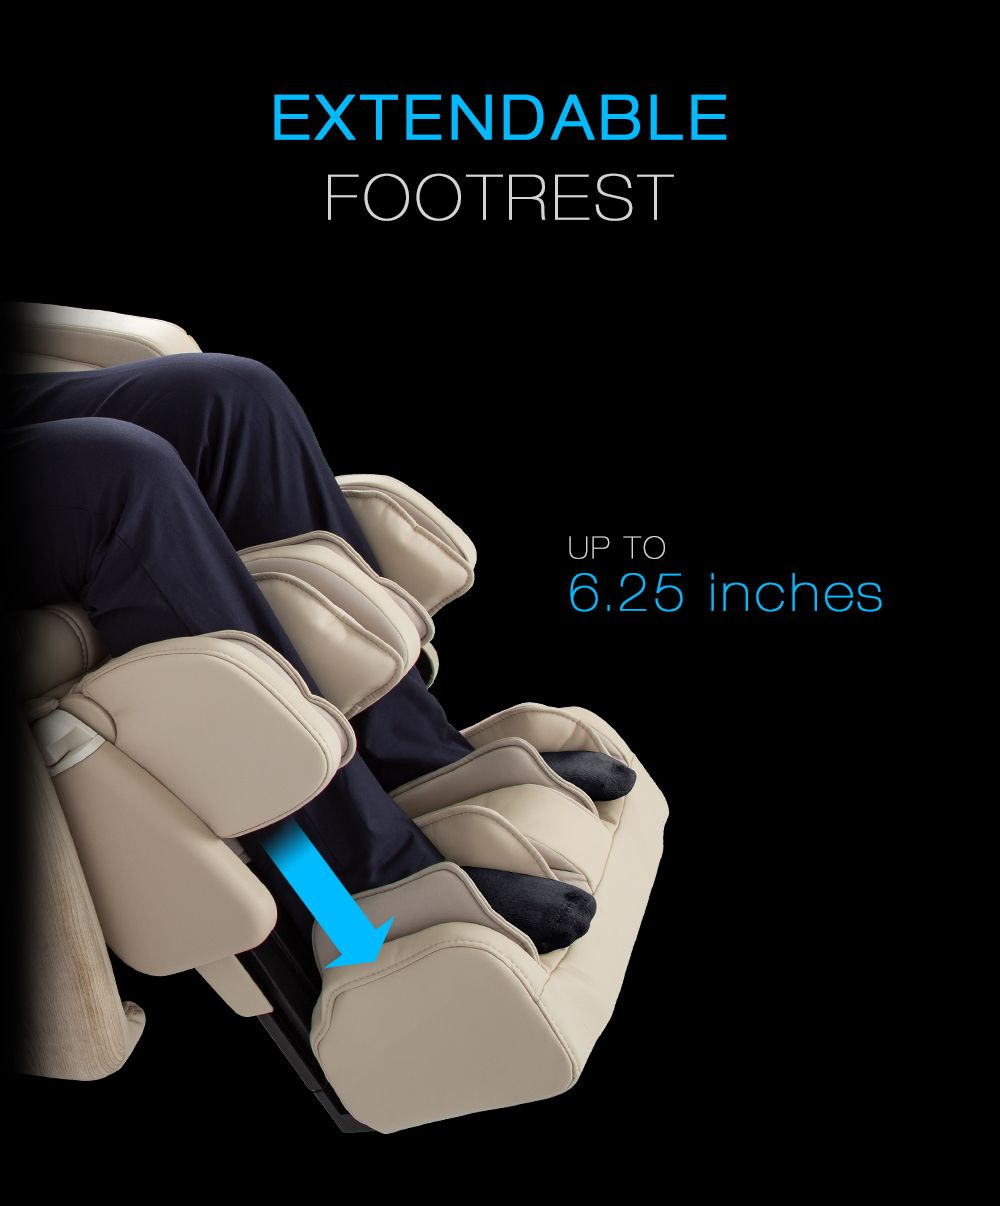 Extendable footrest. Up to 6.25 inches